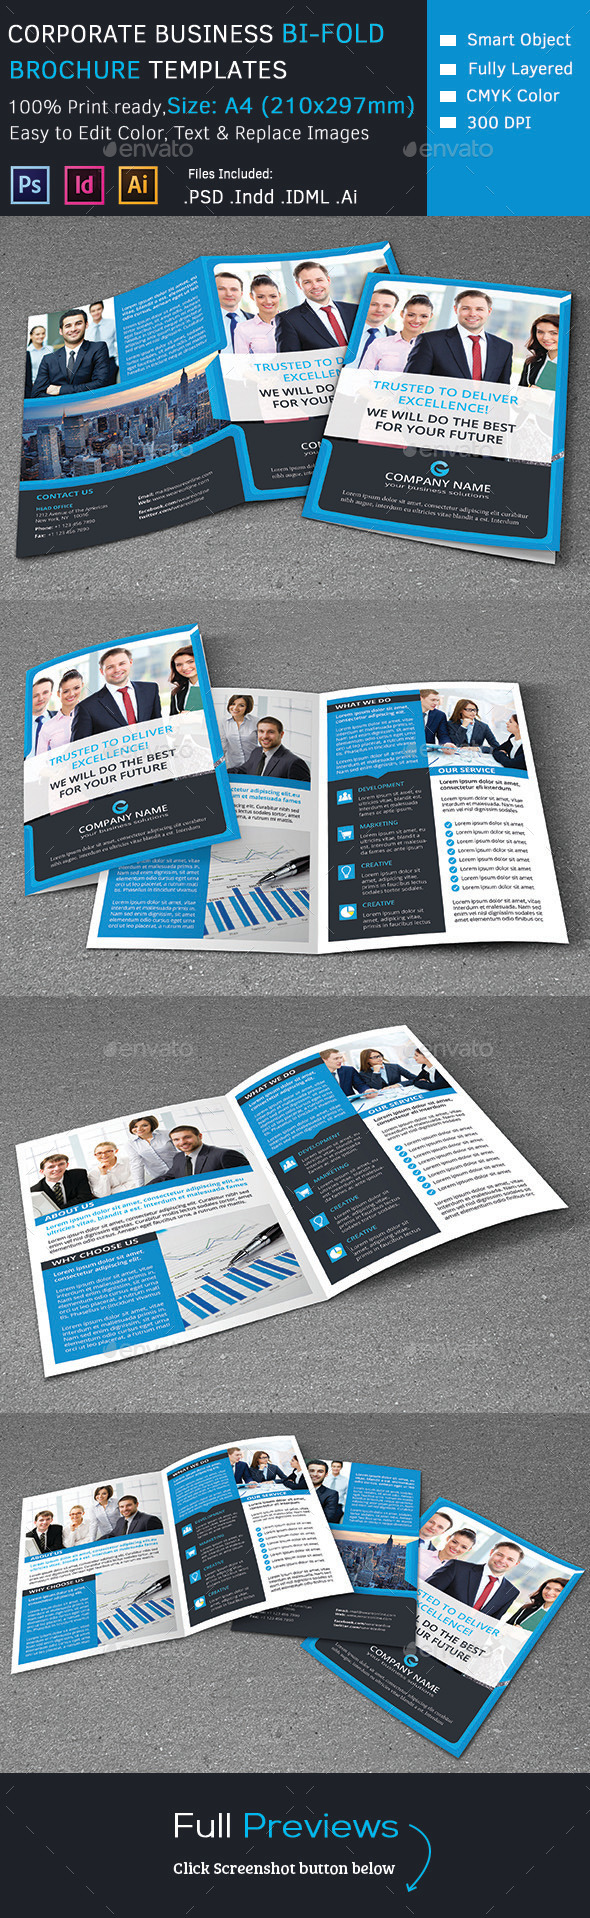 GraphicRiver Corporate Business Bi-Fold Brochure 9384977